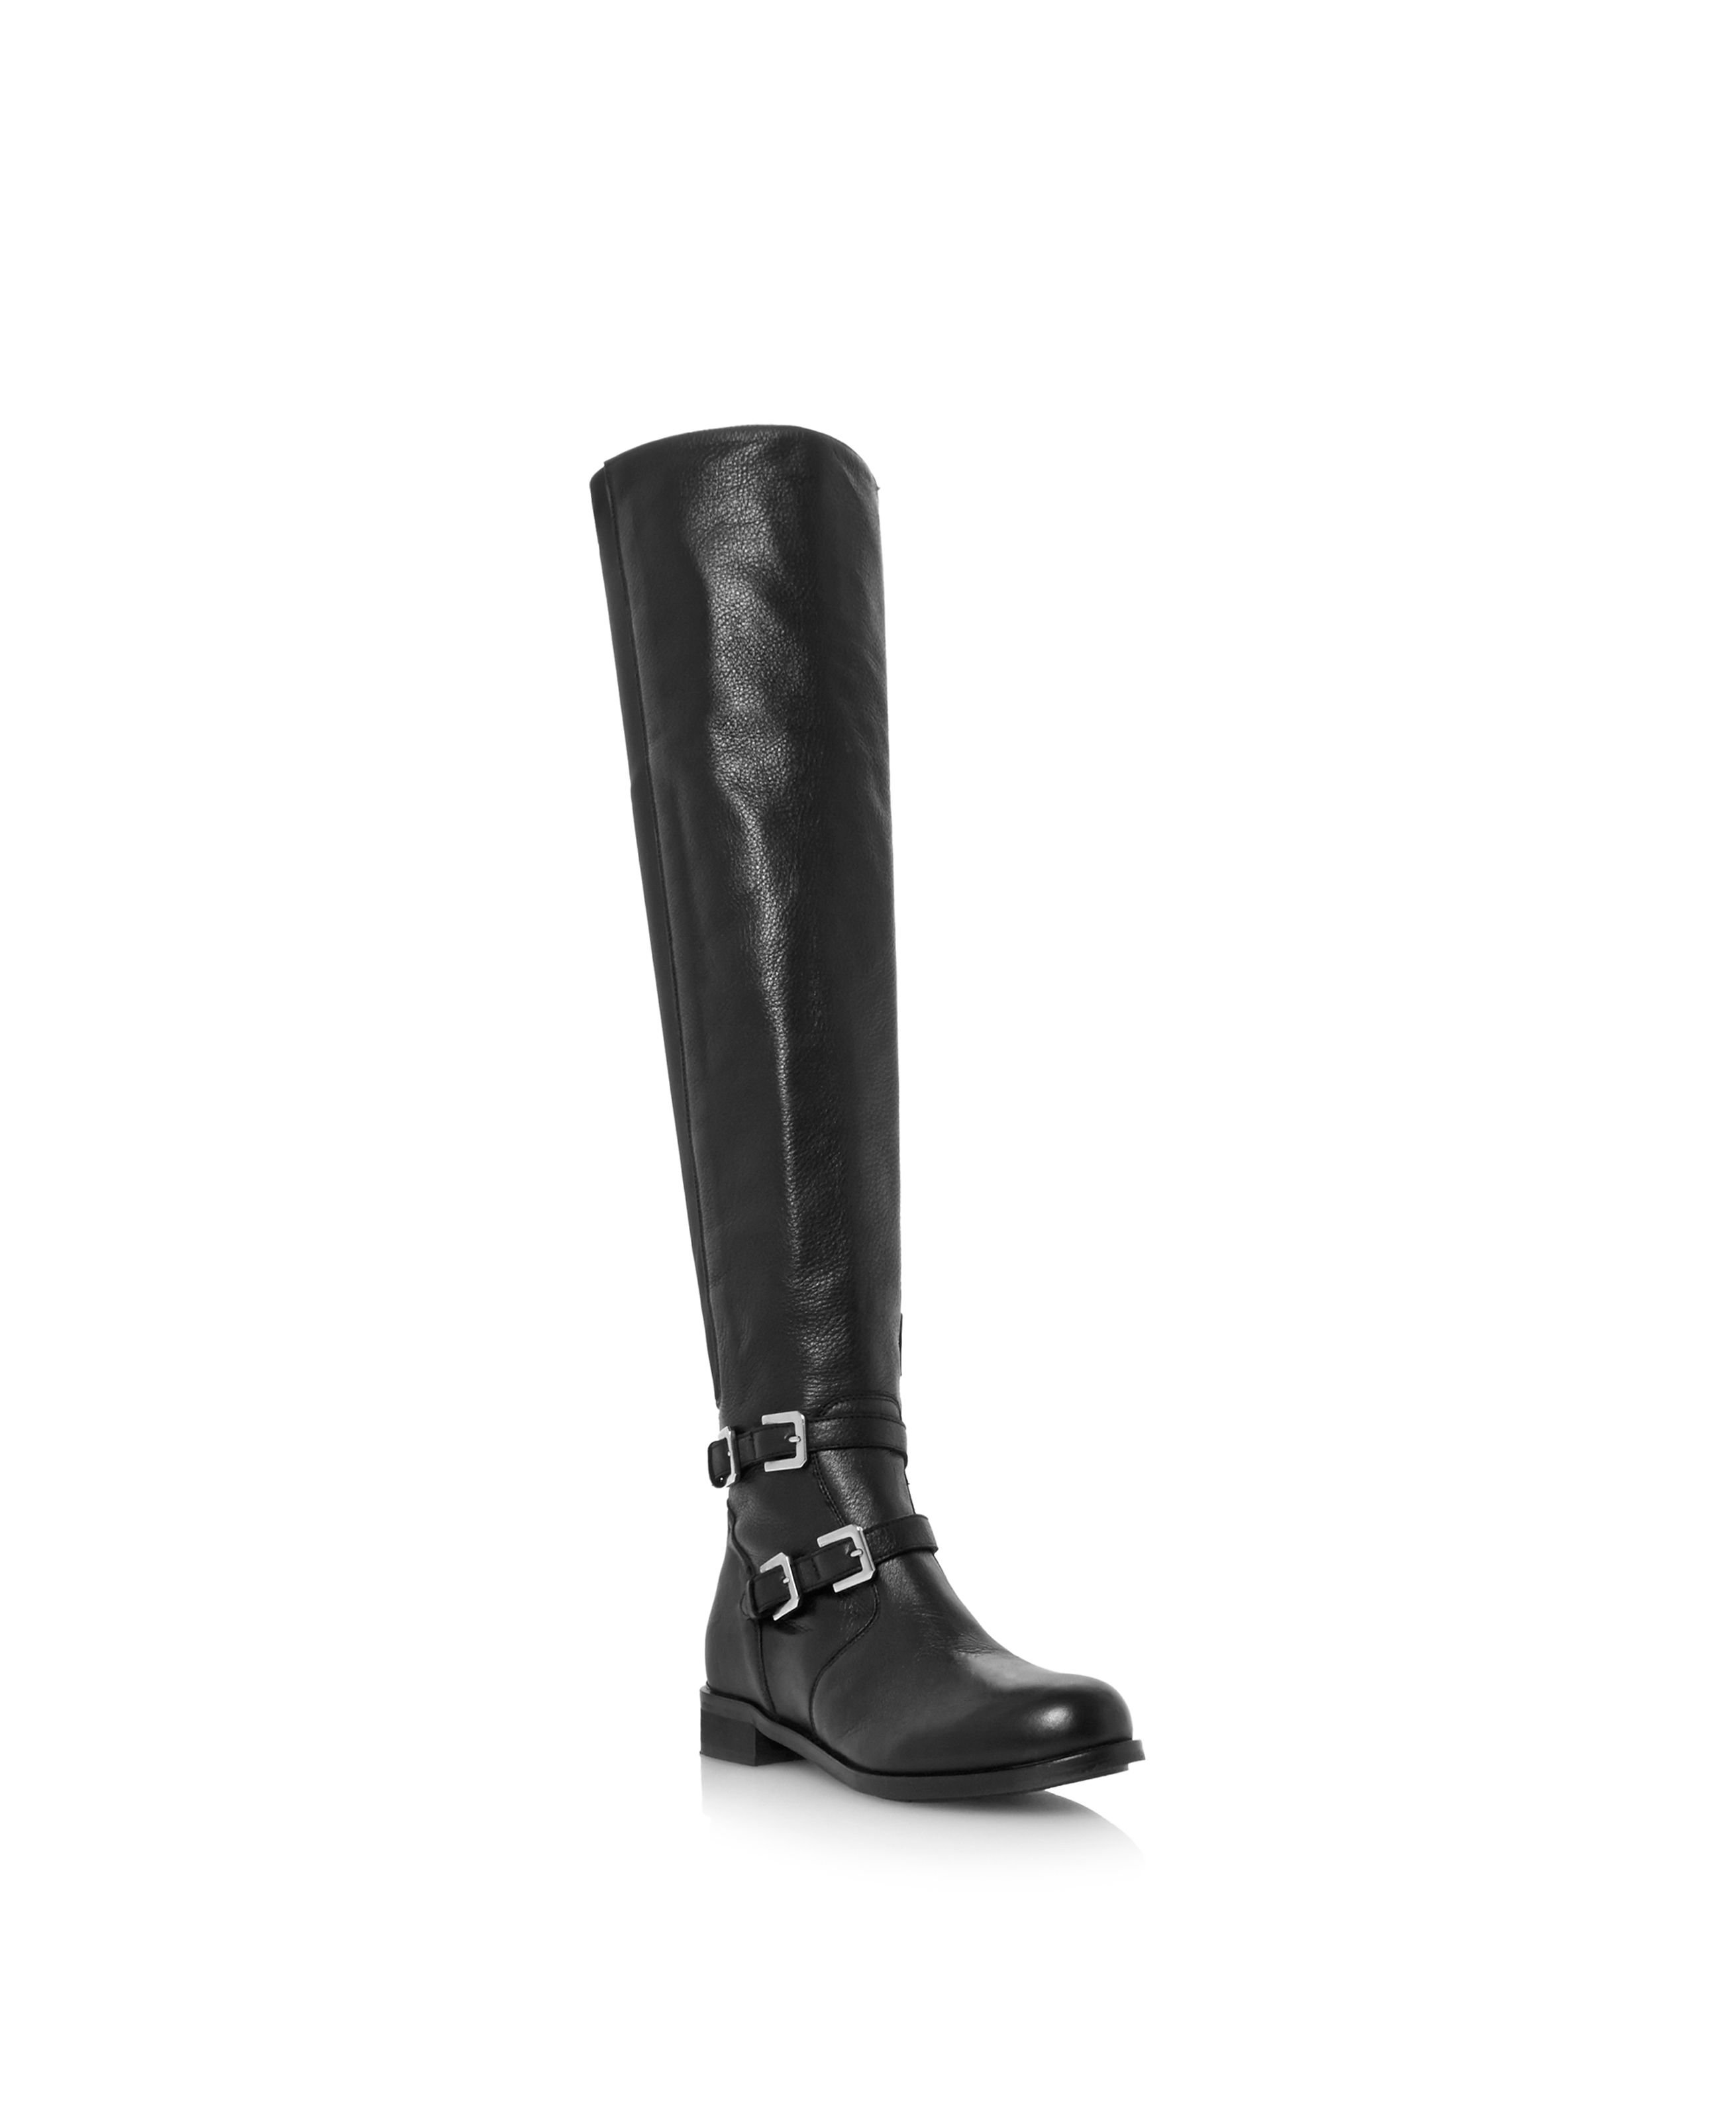 Tarmac elasticated back otk boots